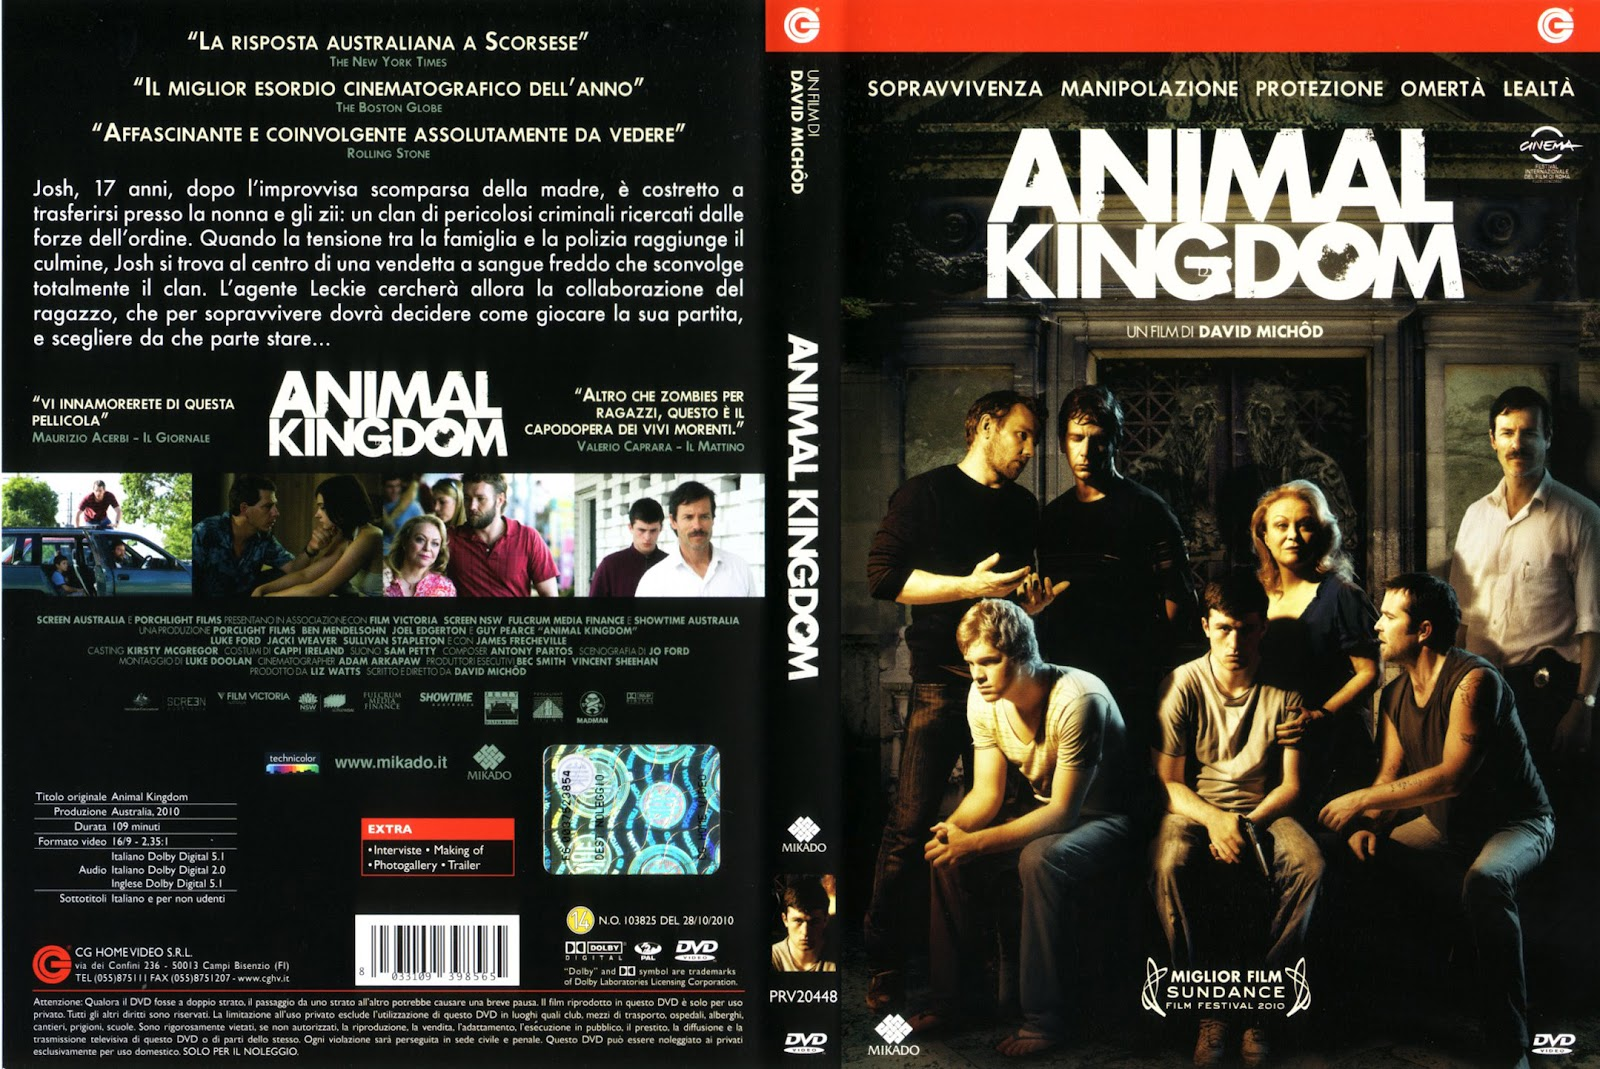 Animal-Kingdom-Movie-Dvd-Cover